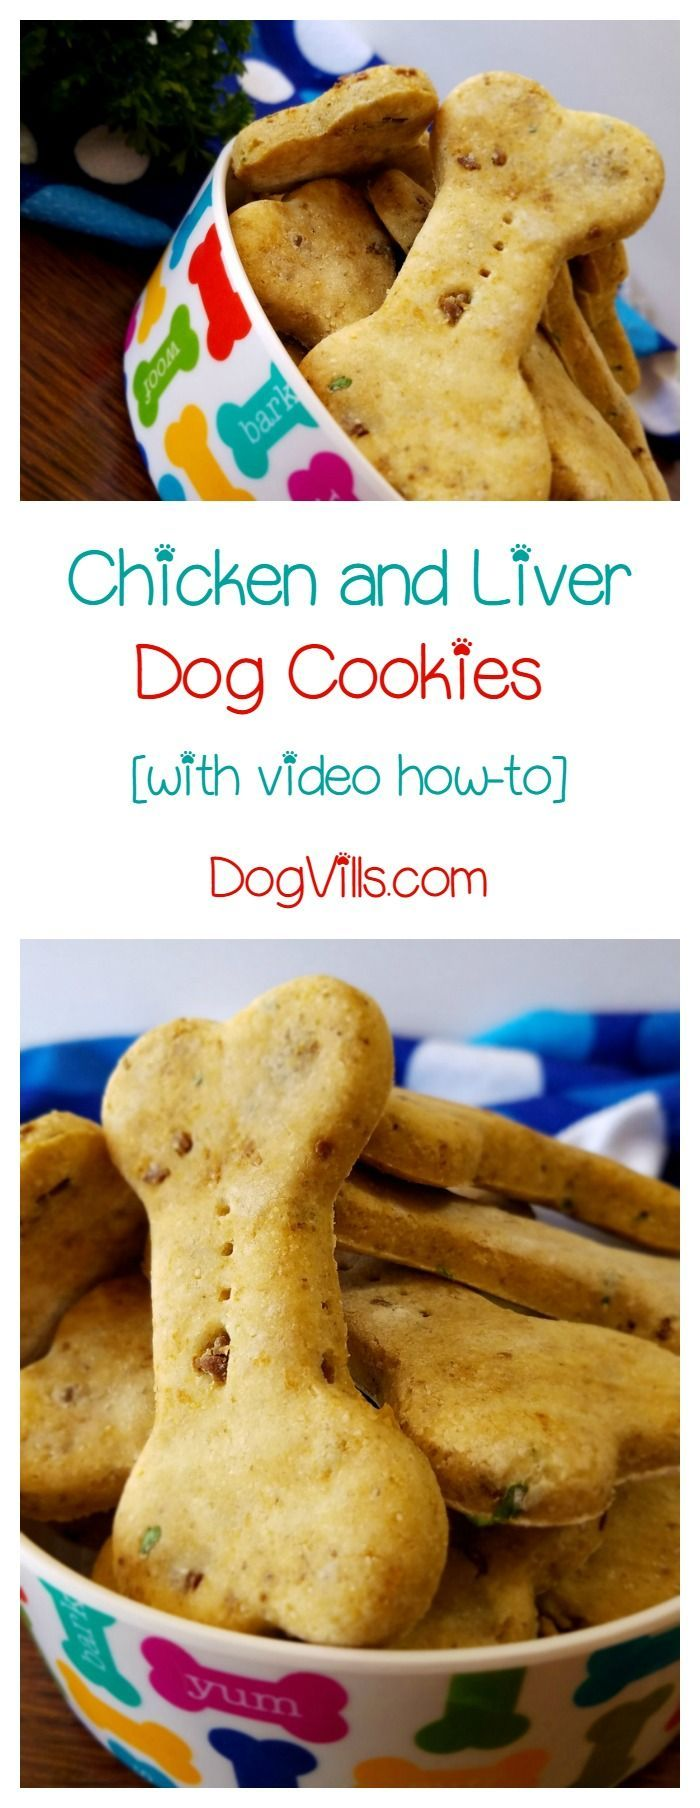 17 best images about homemade dog treats on pinterest